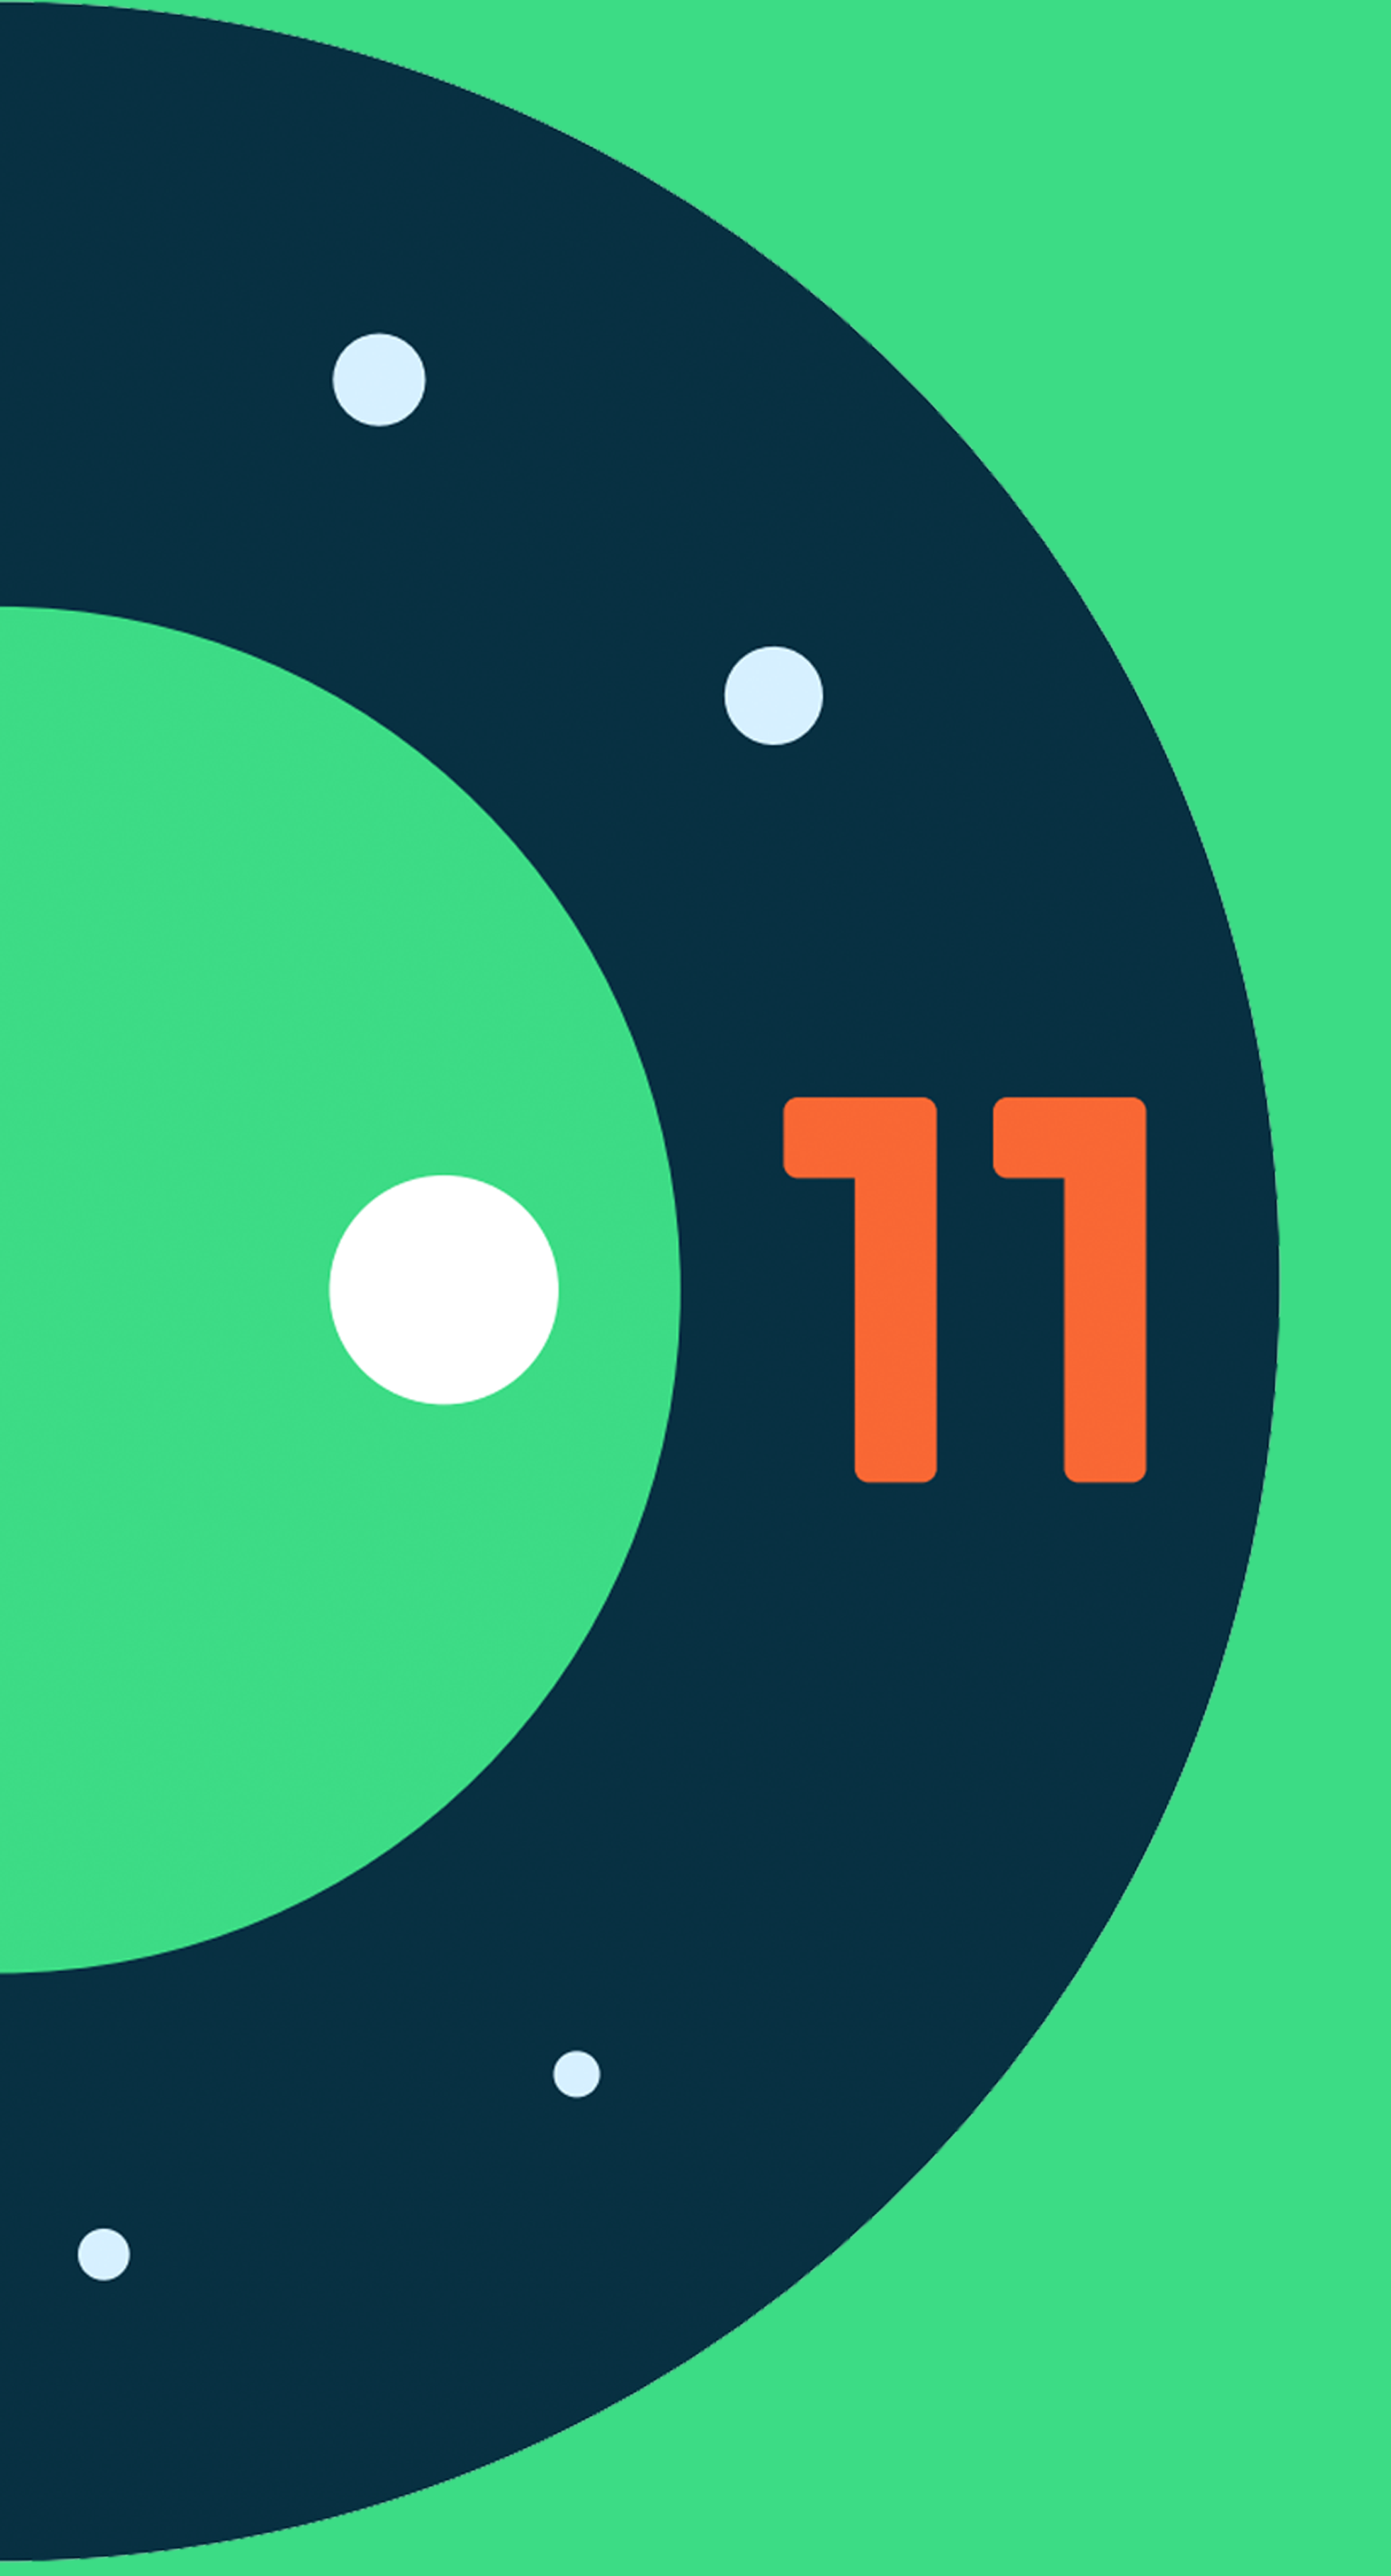 android-11-logo-large-green.png